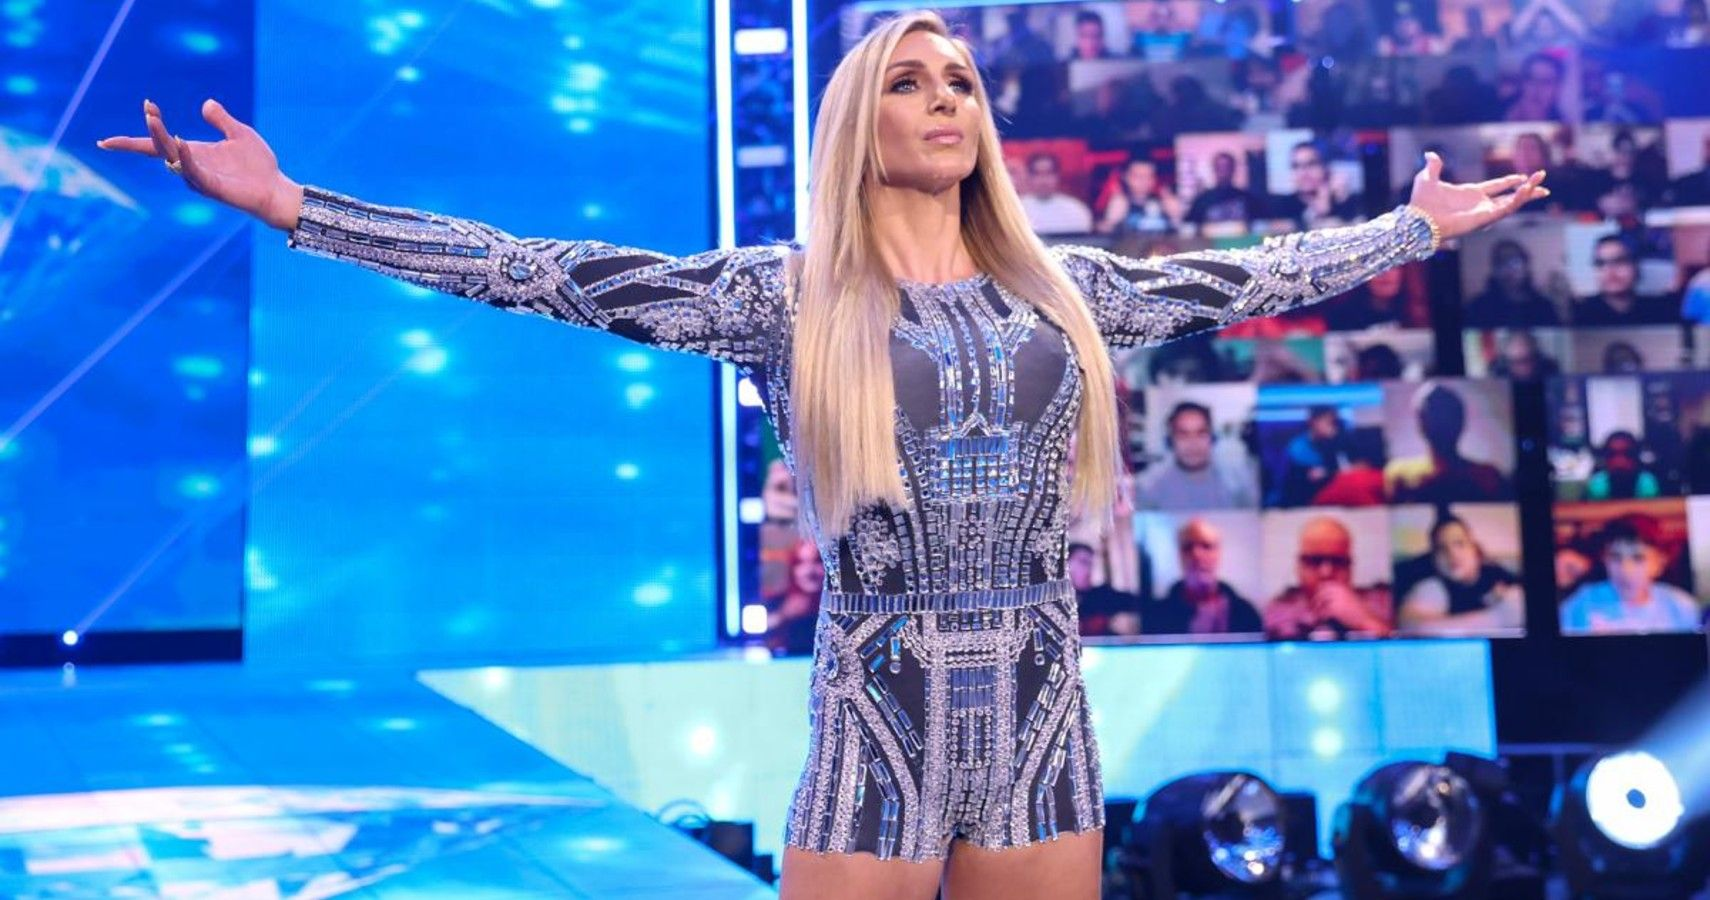 Charlotte Flair Biography - Facts, Childhood, Family Life